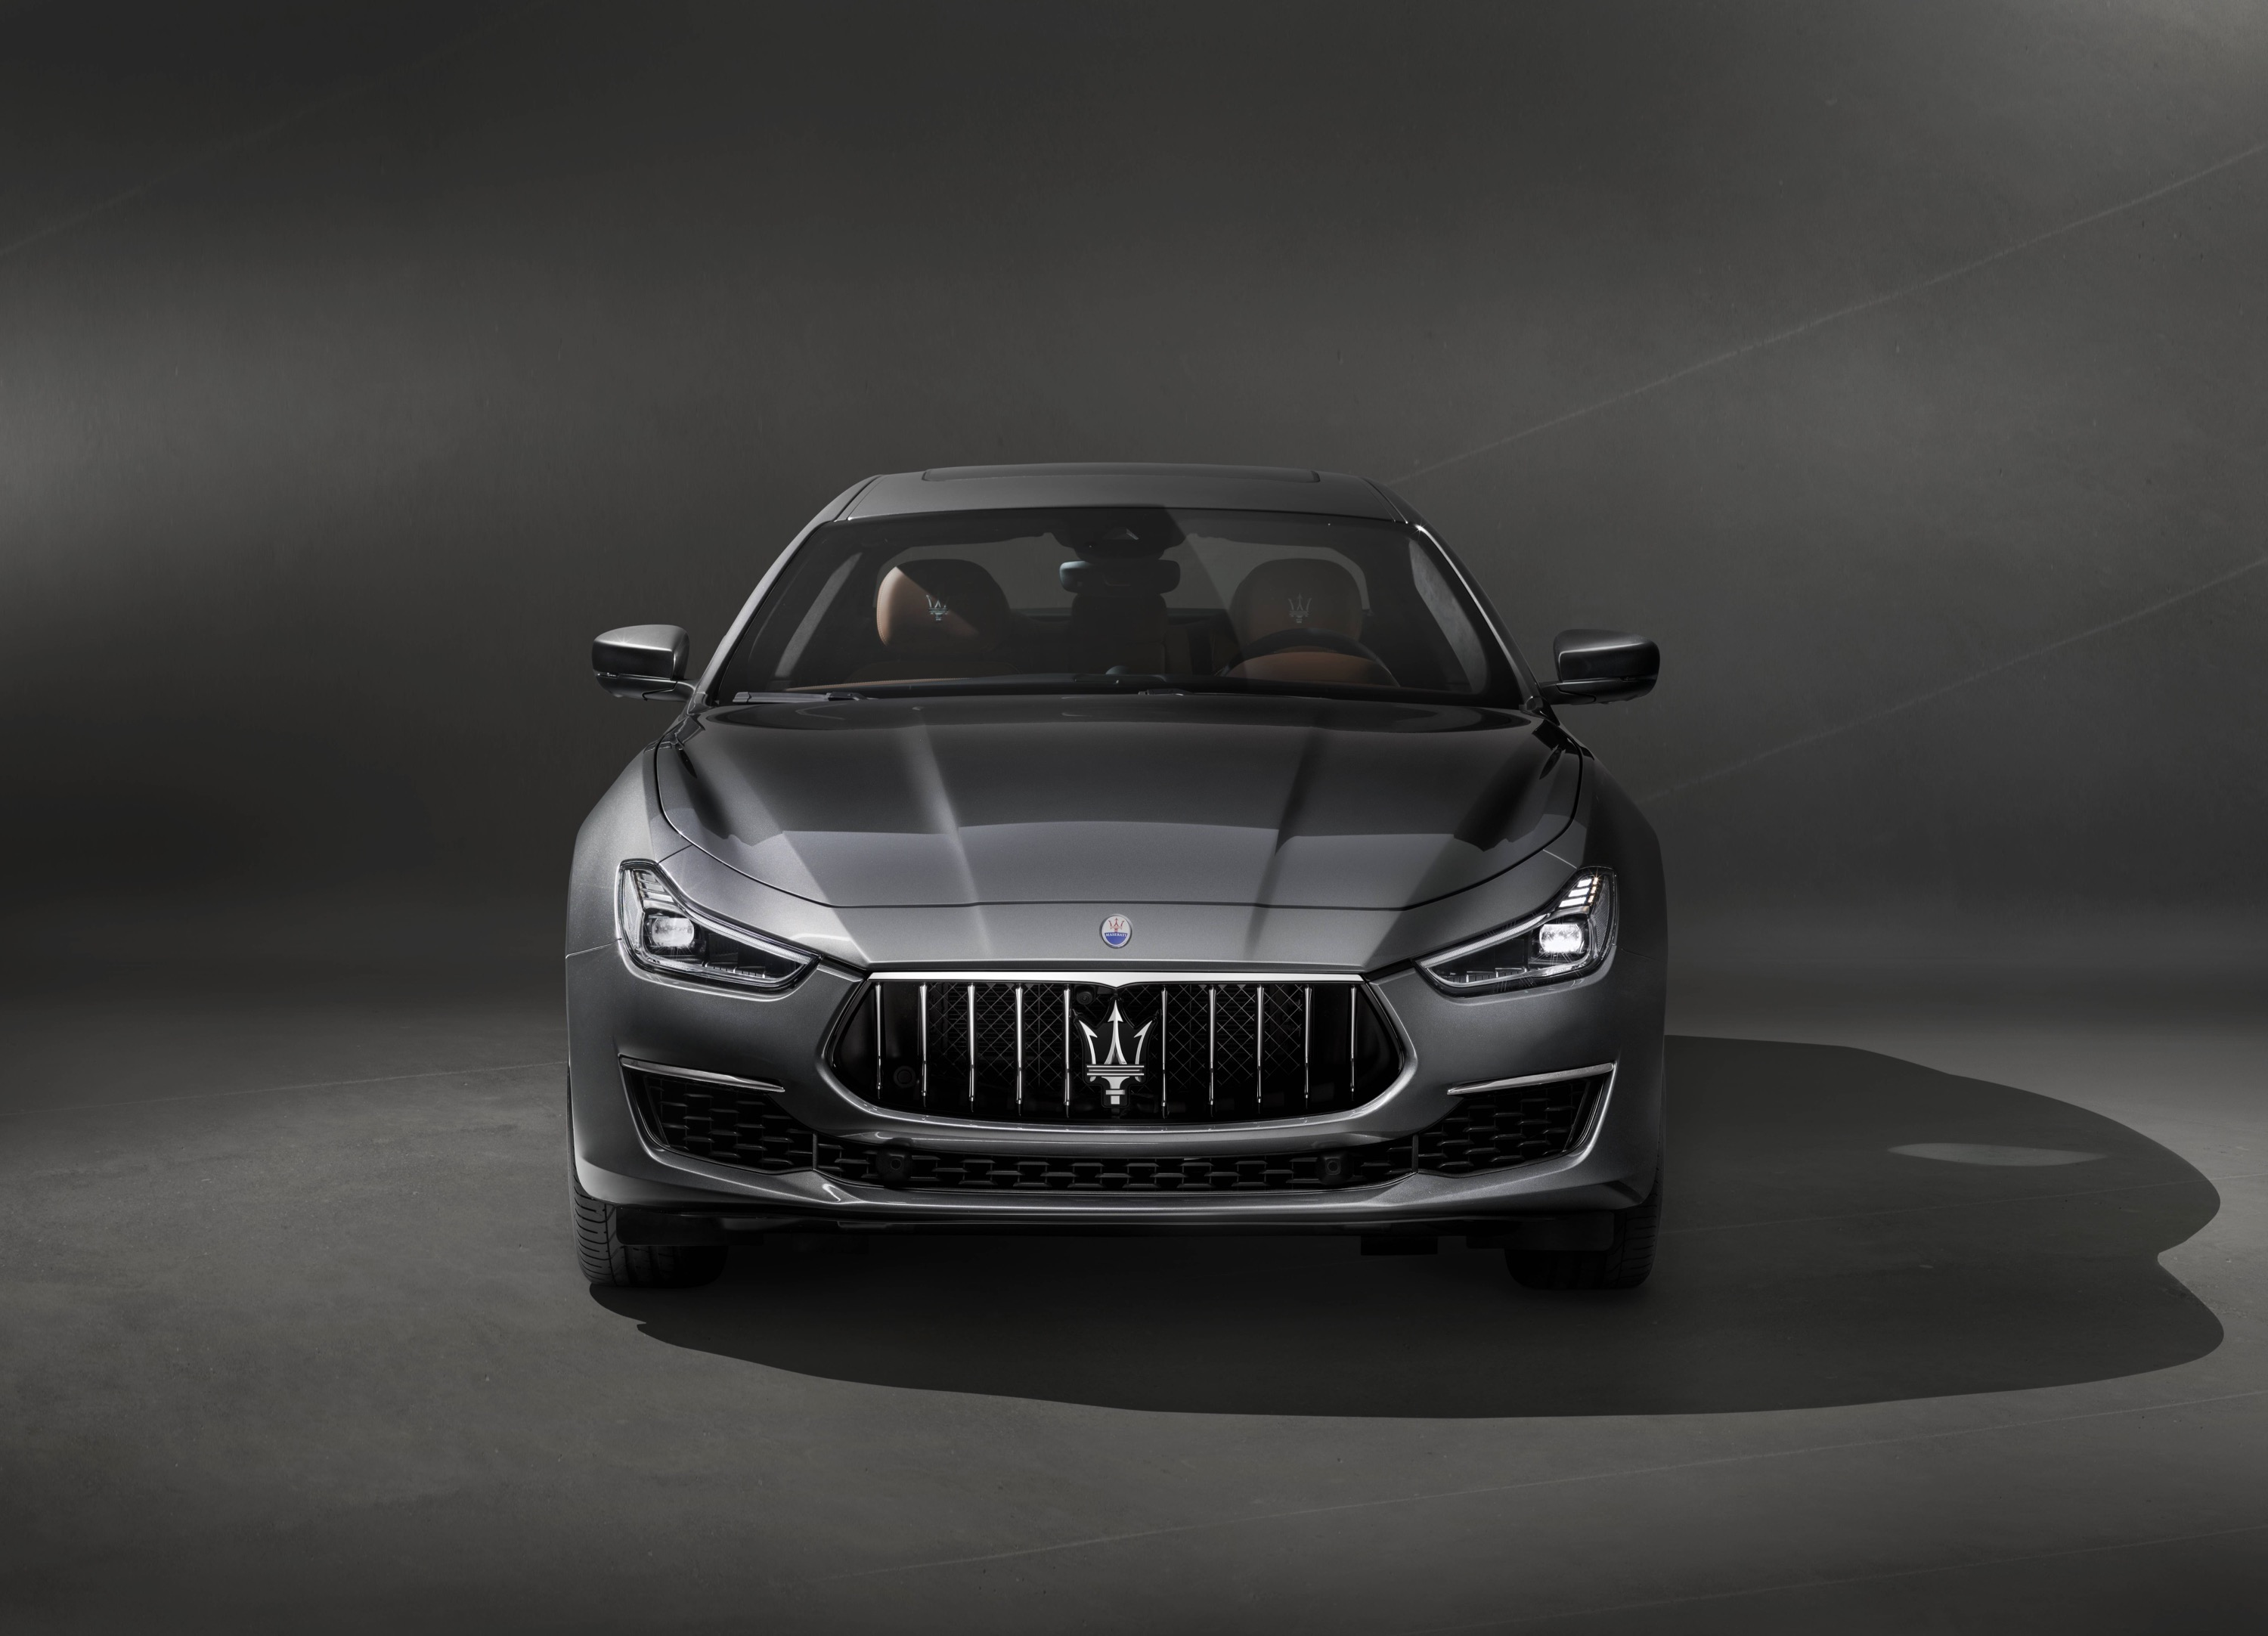 2018 maserati lease. unique lease 2018 maserati ghibli granlusso gransport refreshed sedan due next year   update inside maserati lease e